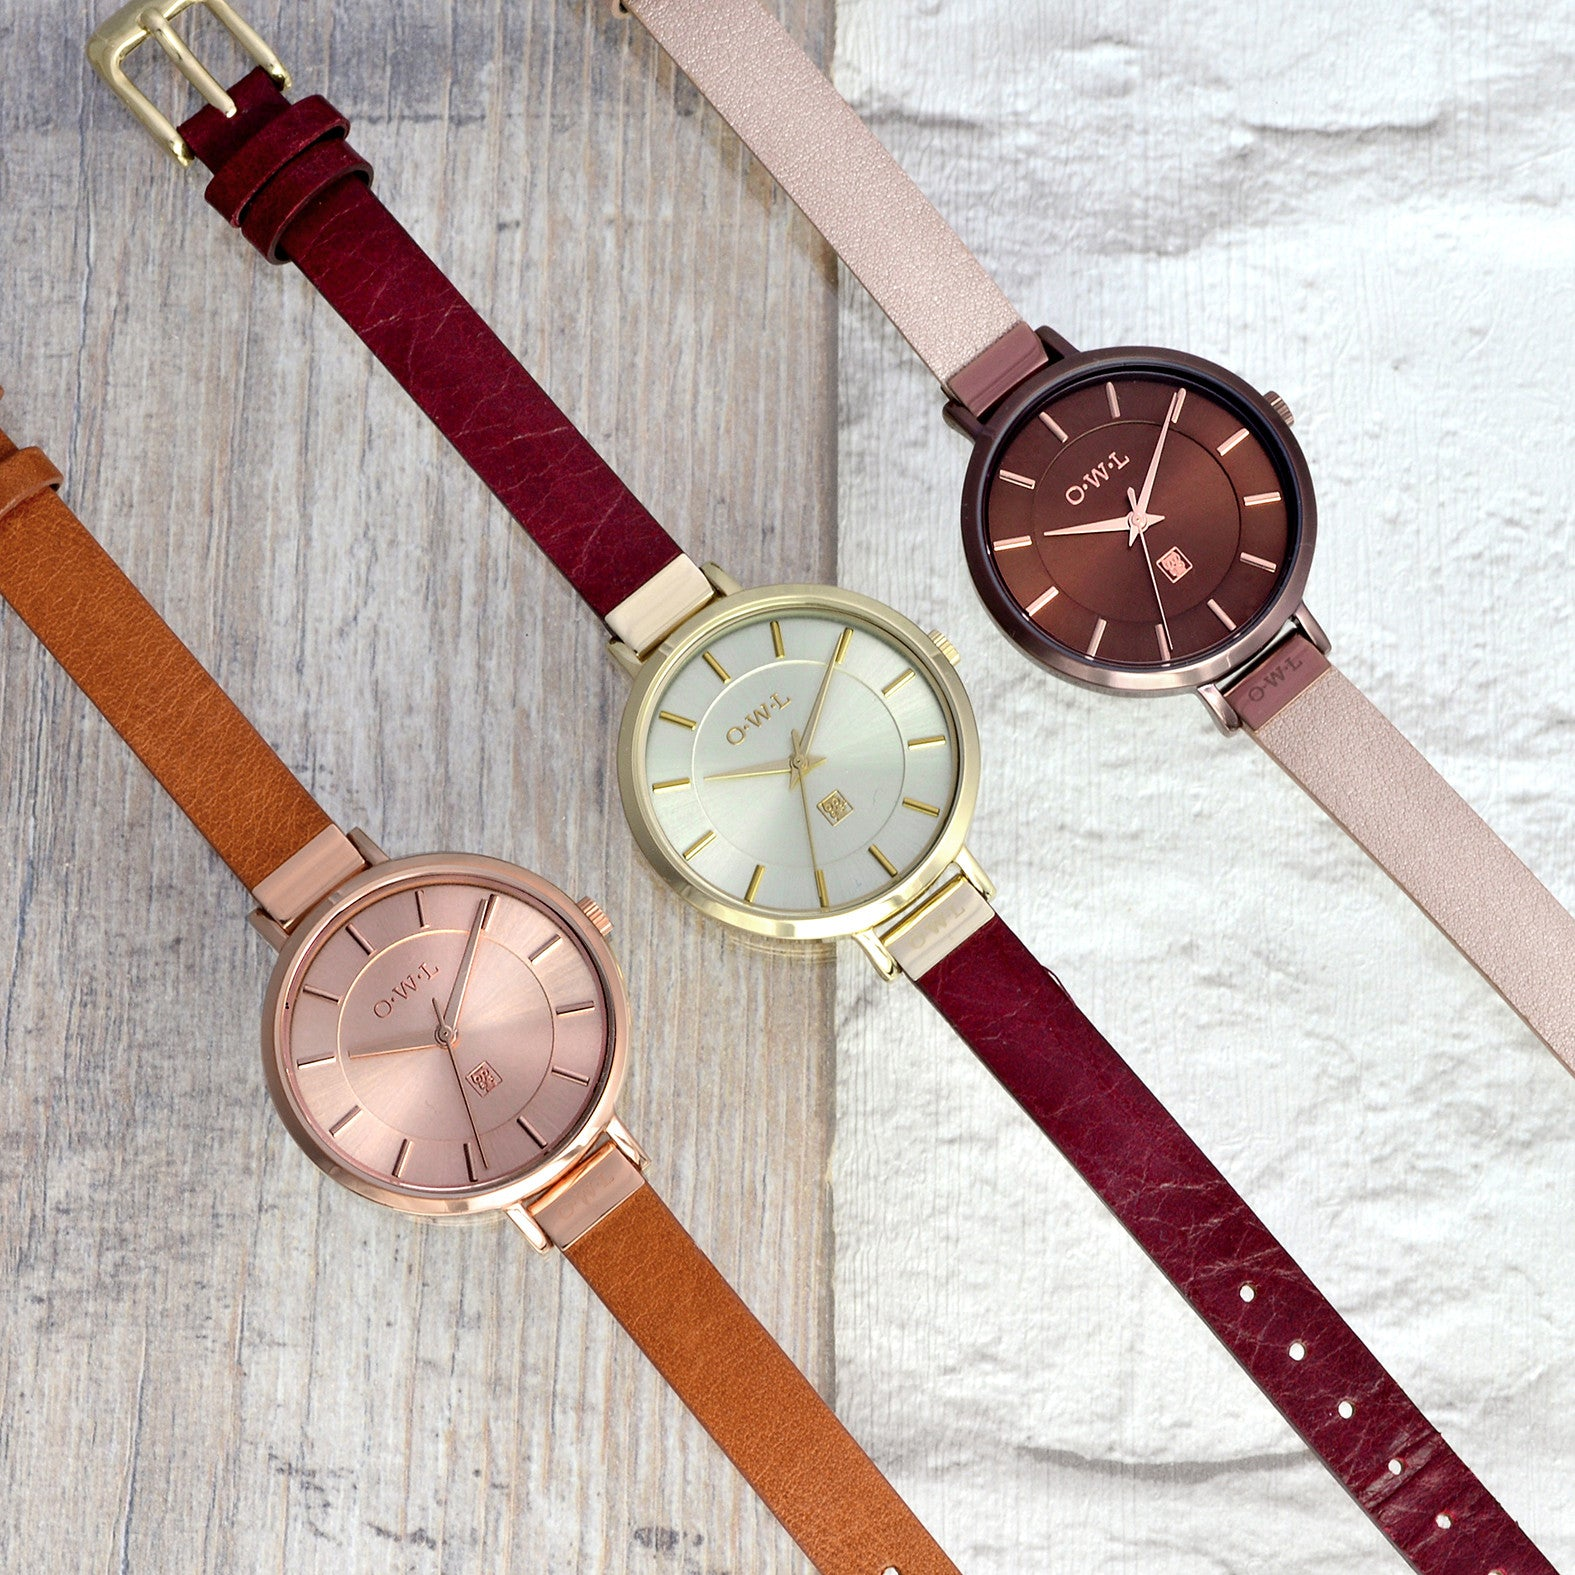 the watches donuts drama new s how wood watch styling and timeless style jord men to timepiece